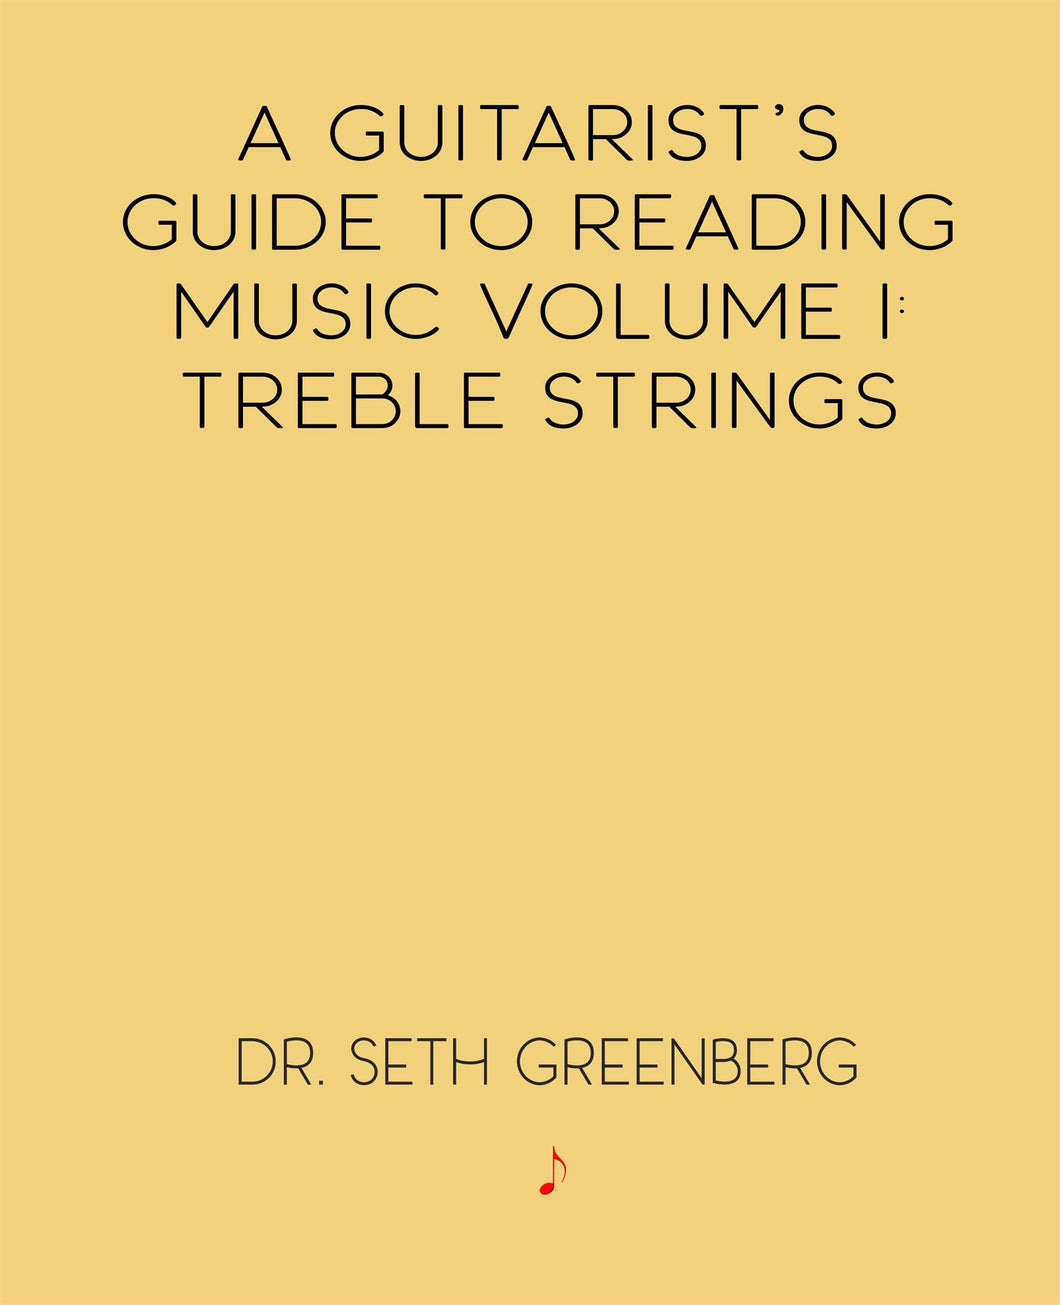 A Guitarist's Guide to Reading Music Vol. 1: Treble Strings